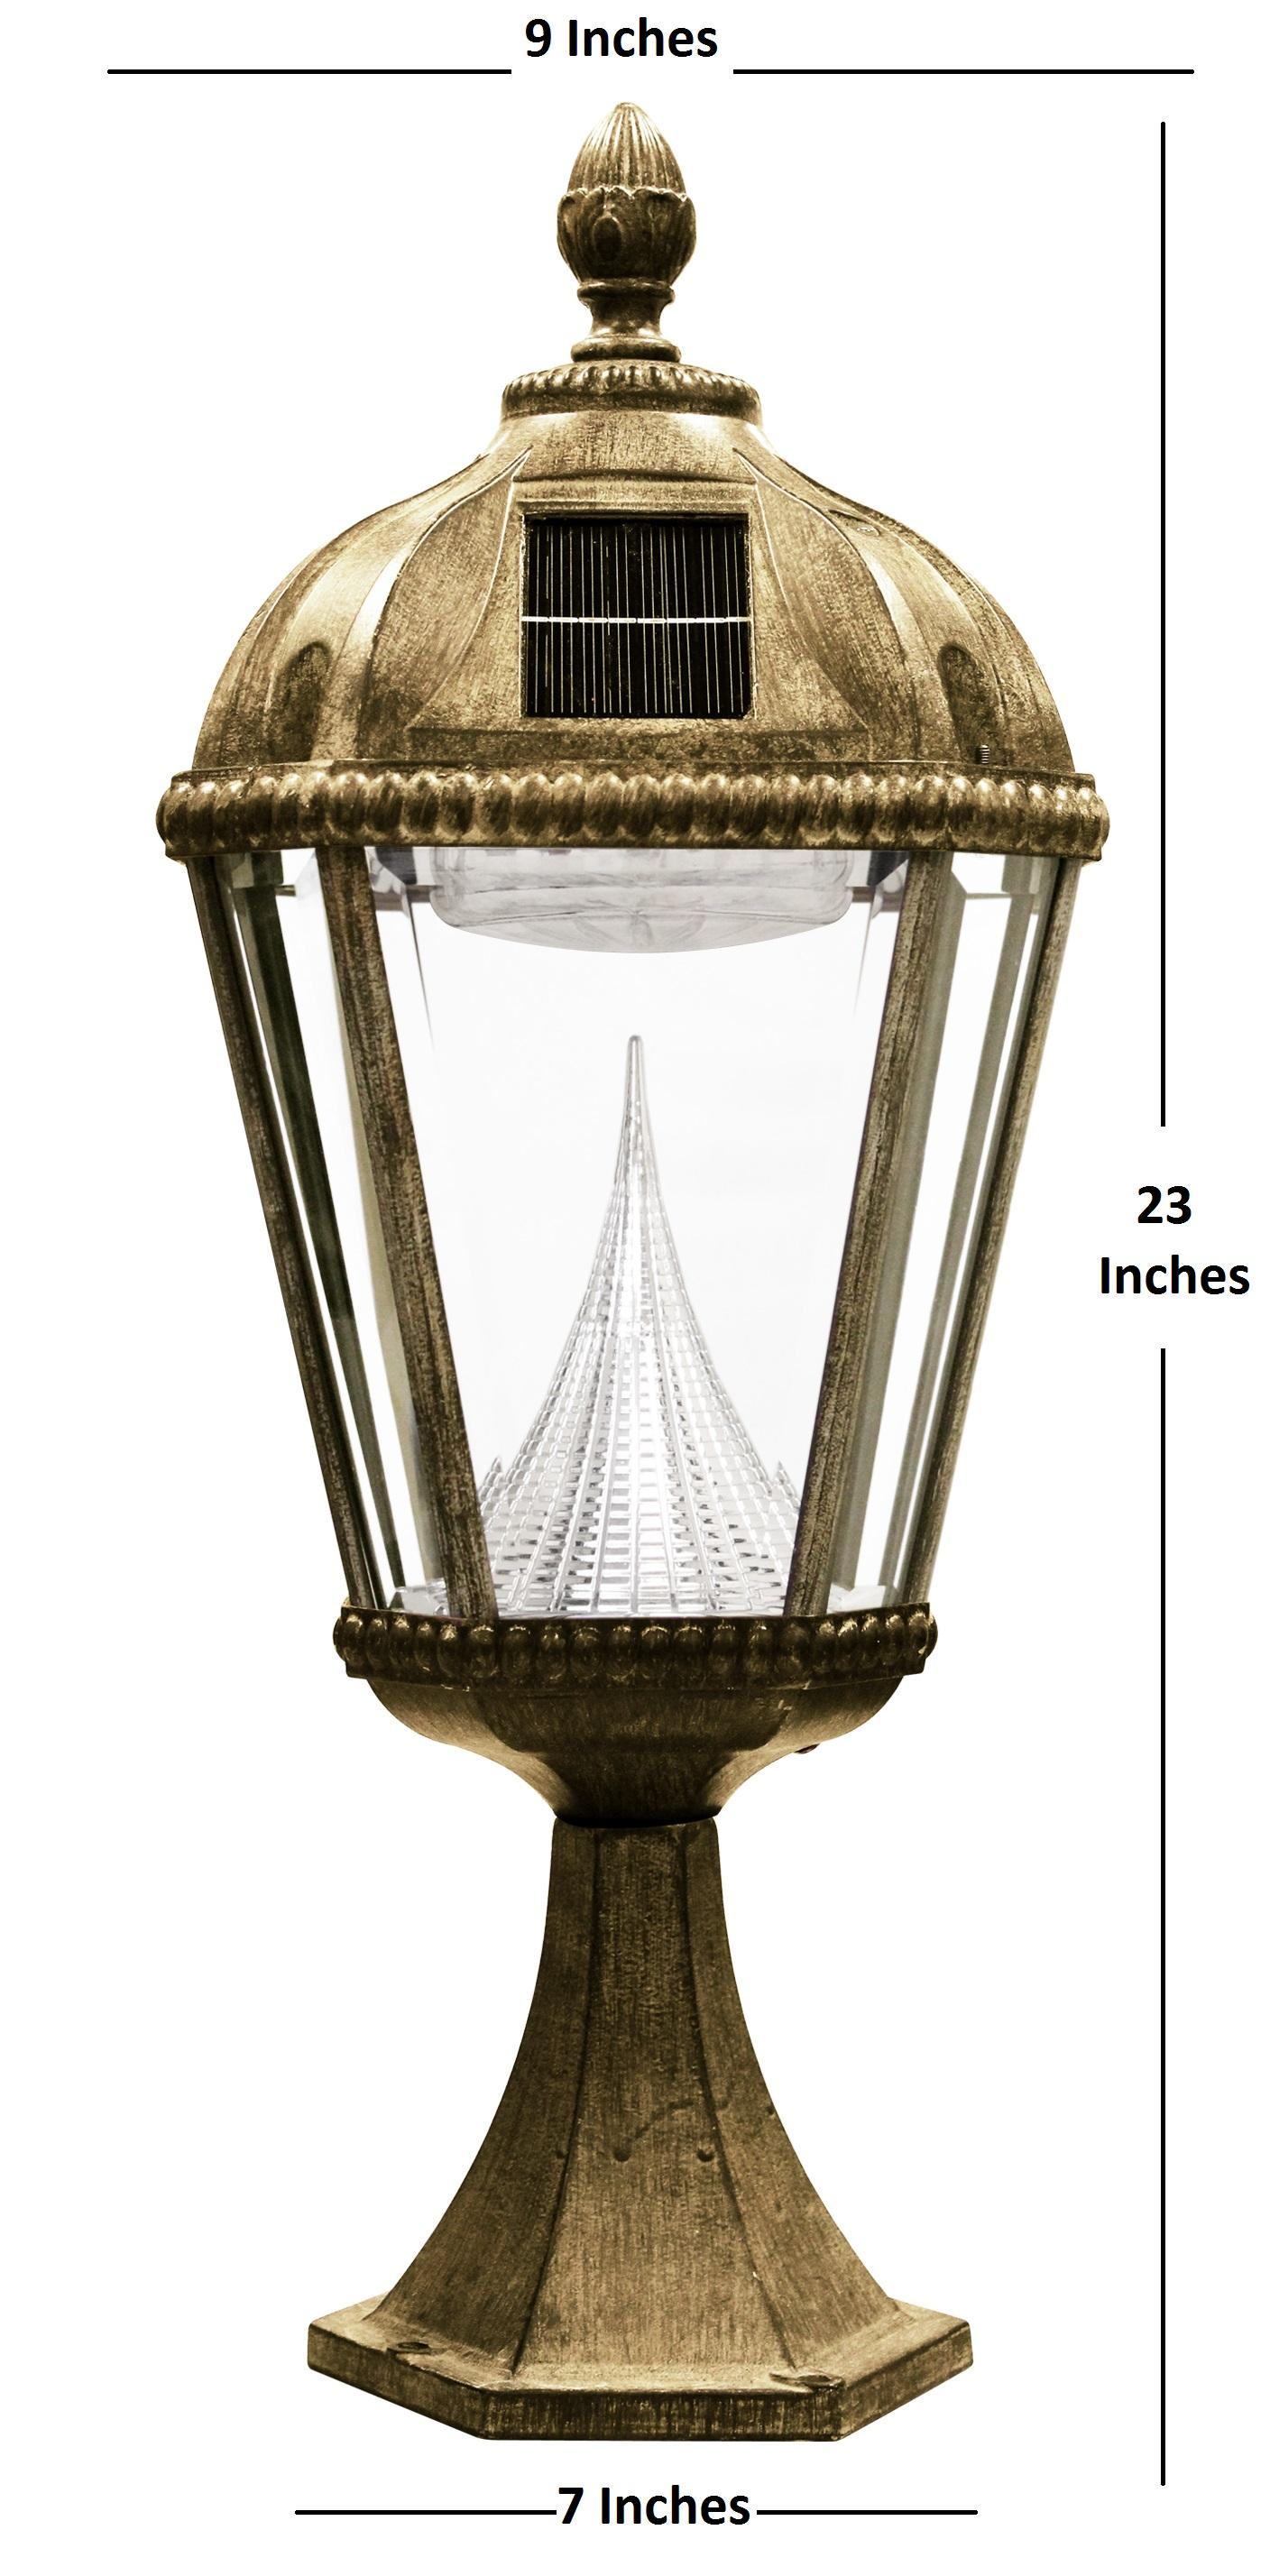 Gama Sonic Royal Solar Outdoor LED Light Fixture, Pier Base for Flat